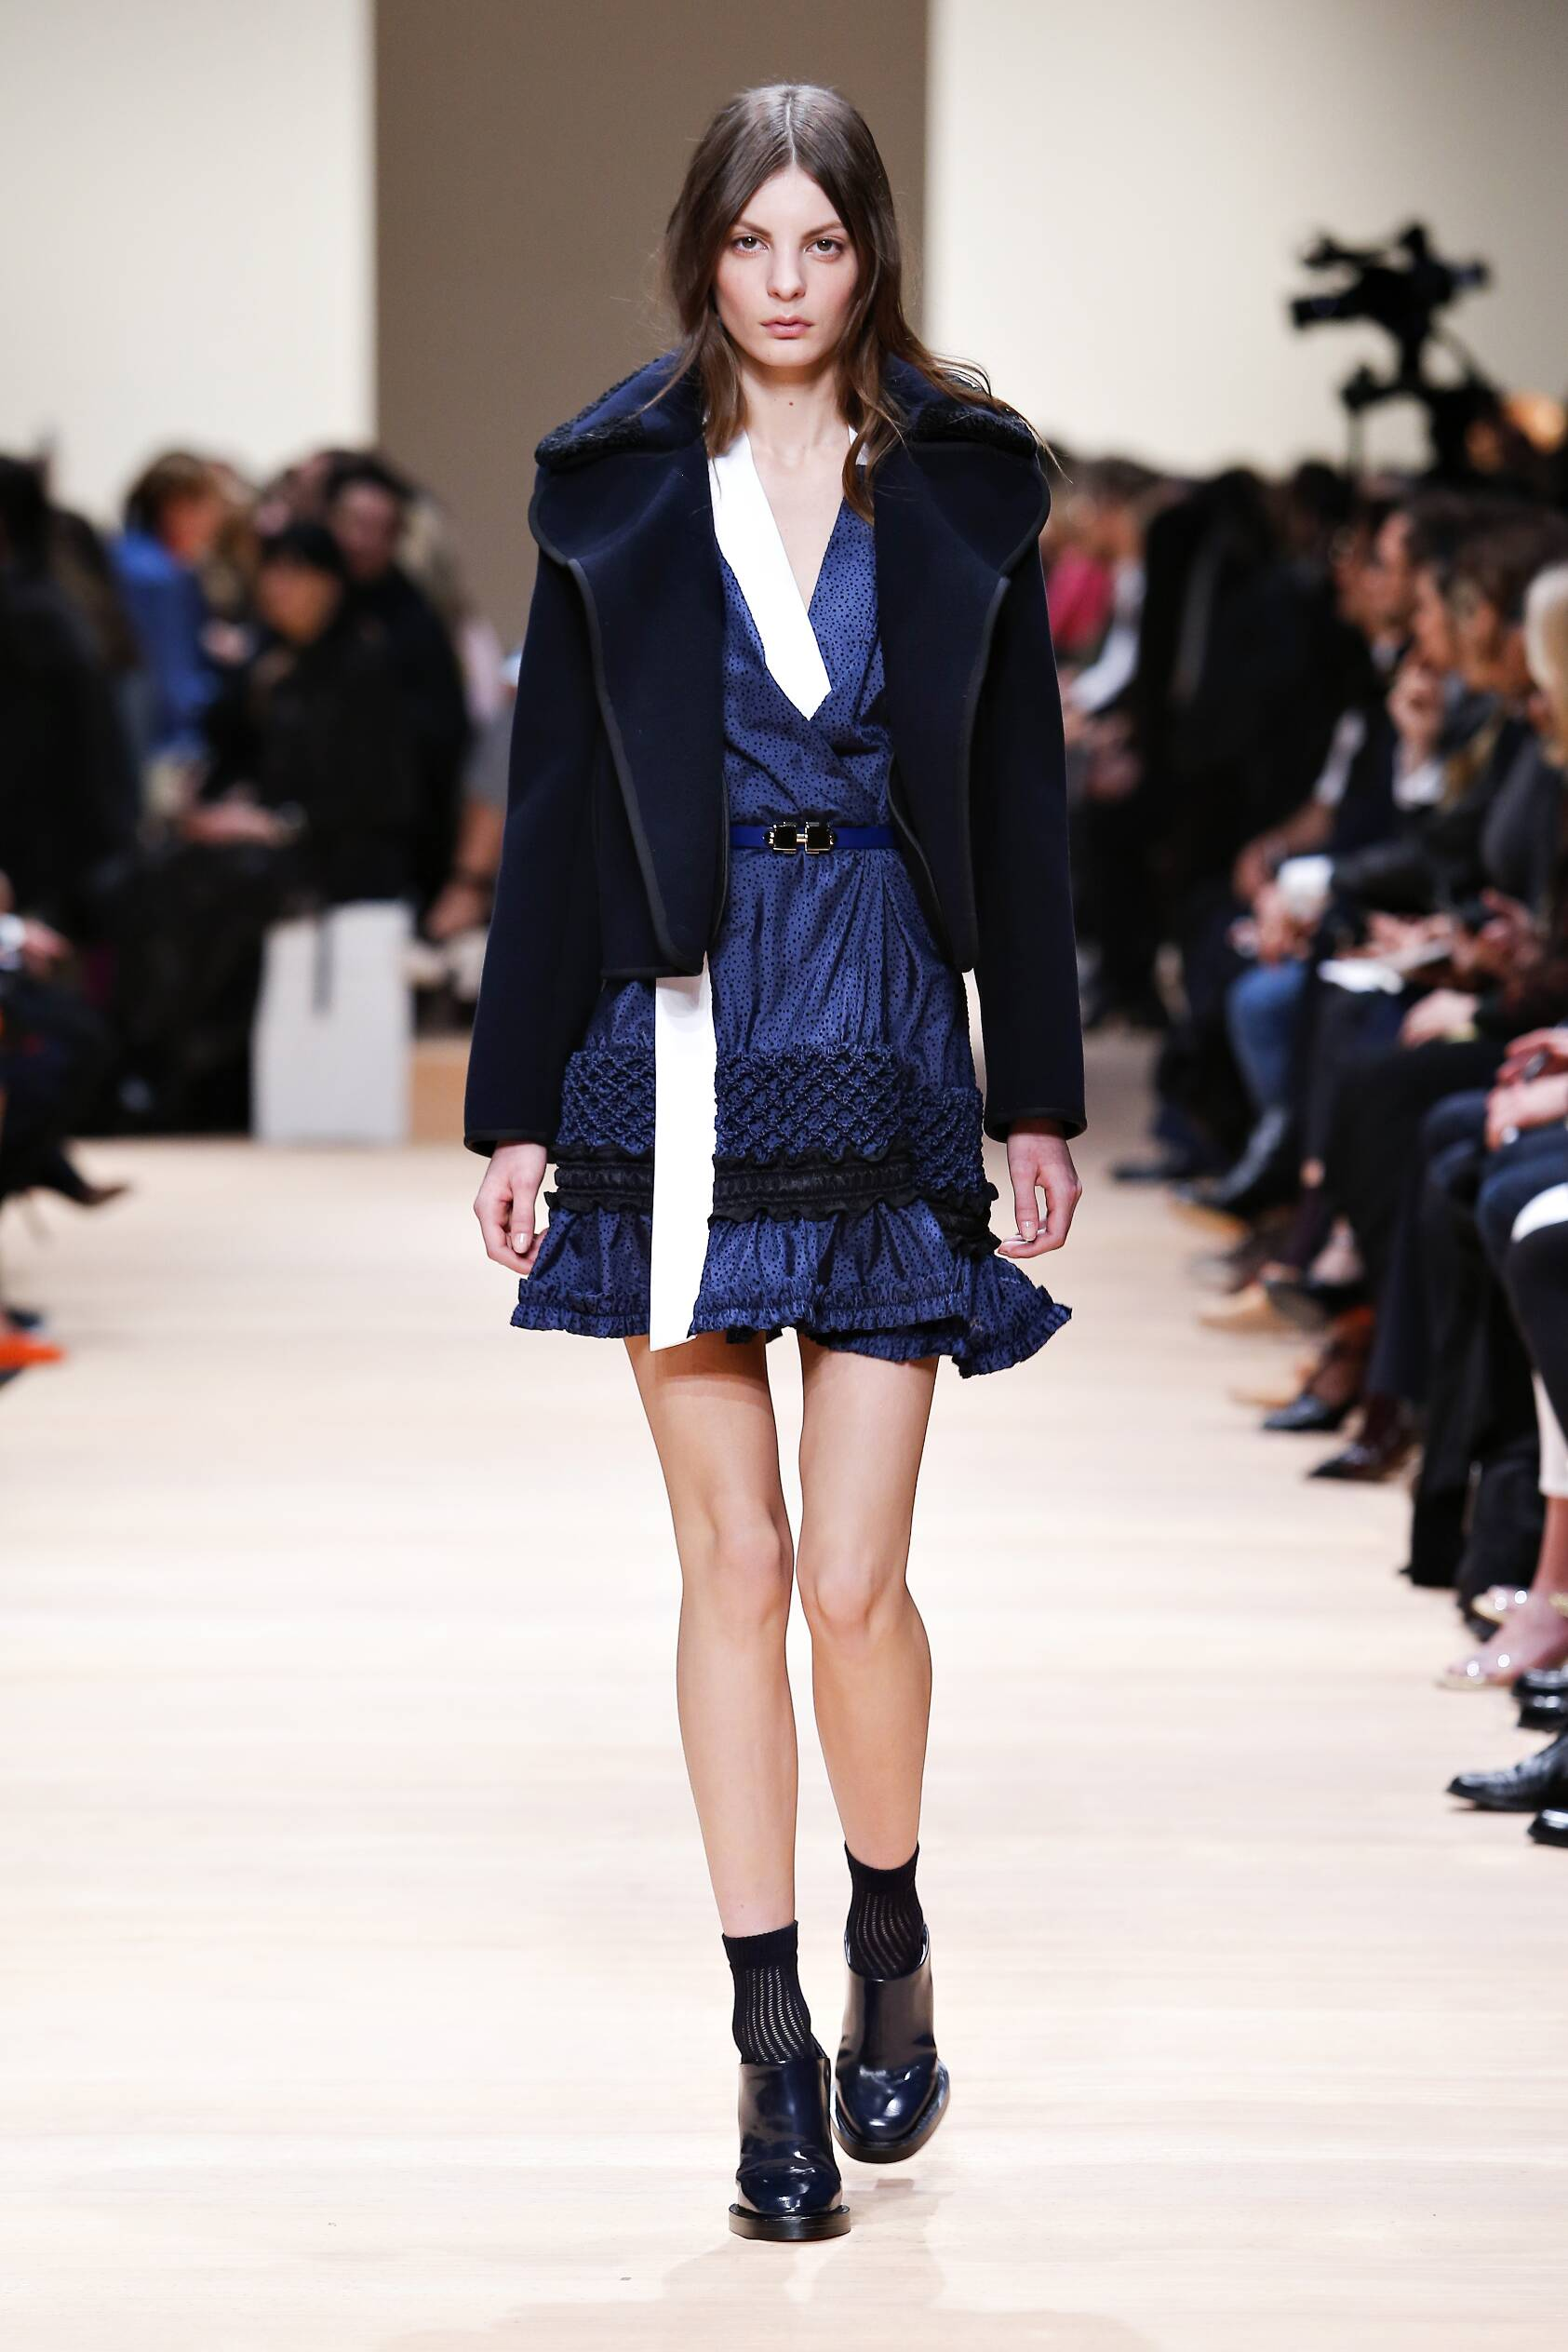 Carven Collection Fashion Show FW 2015 2016